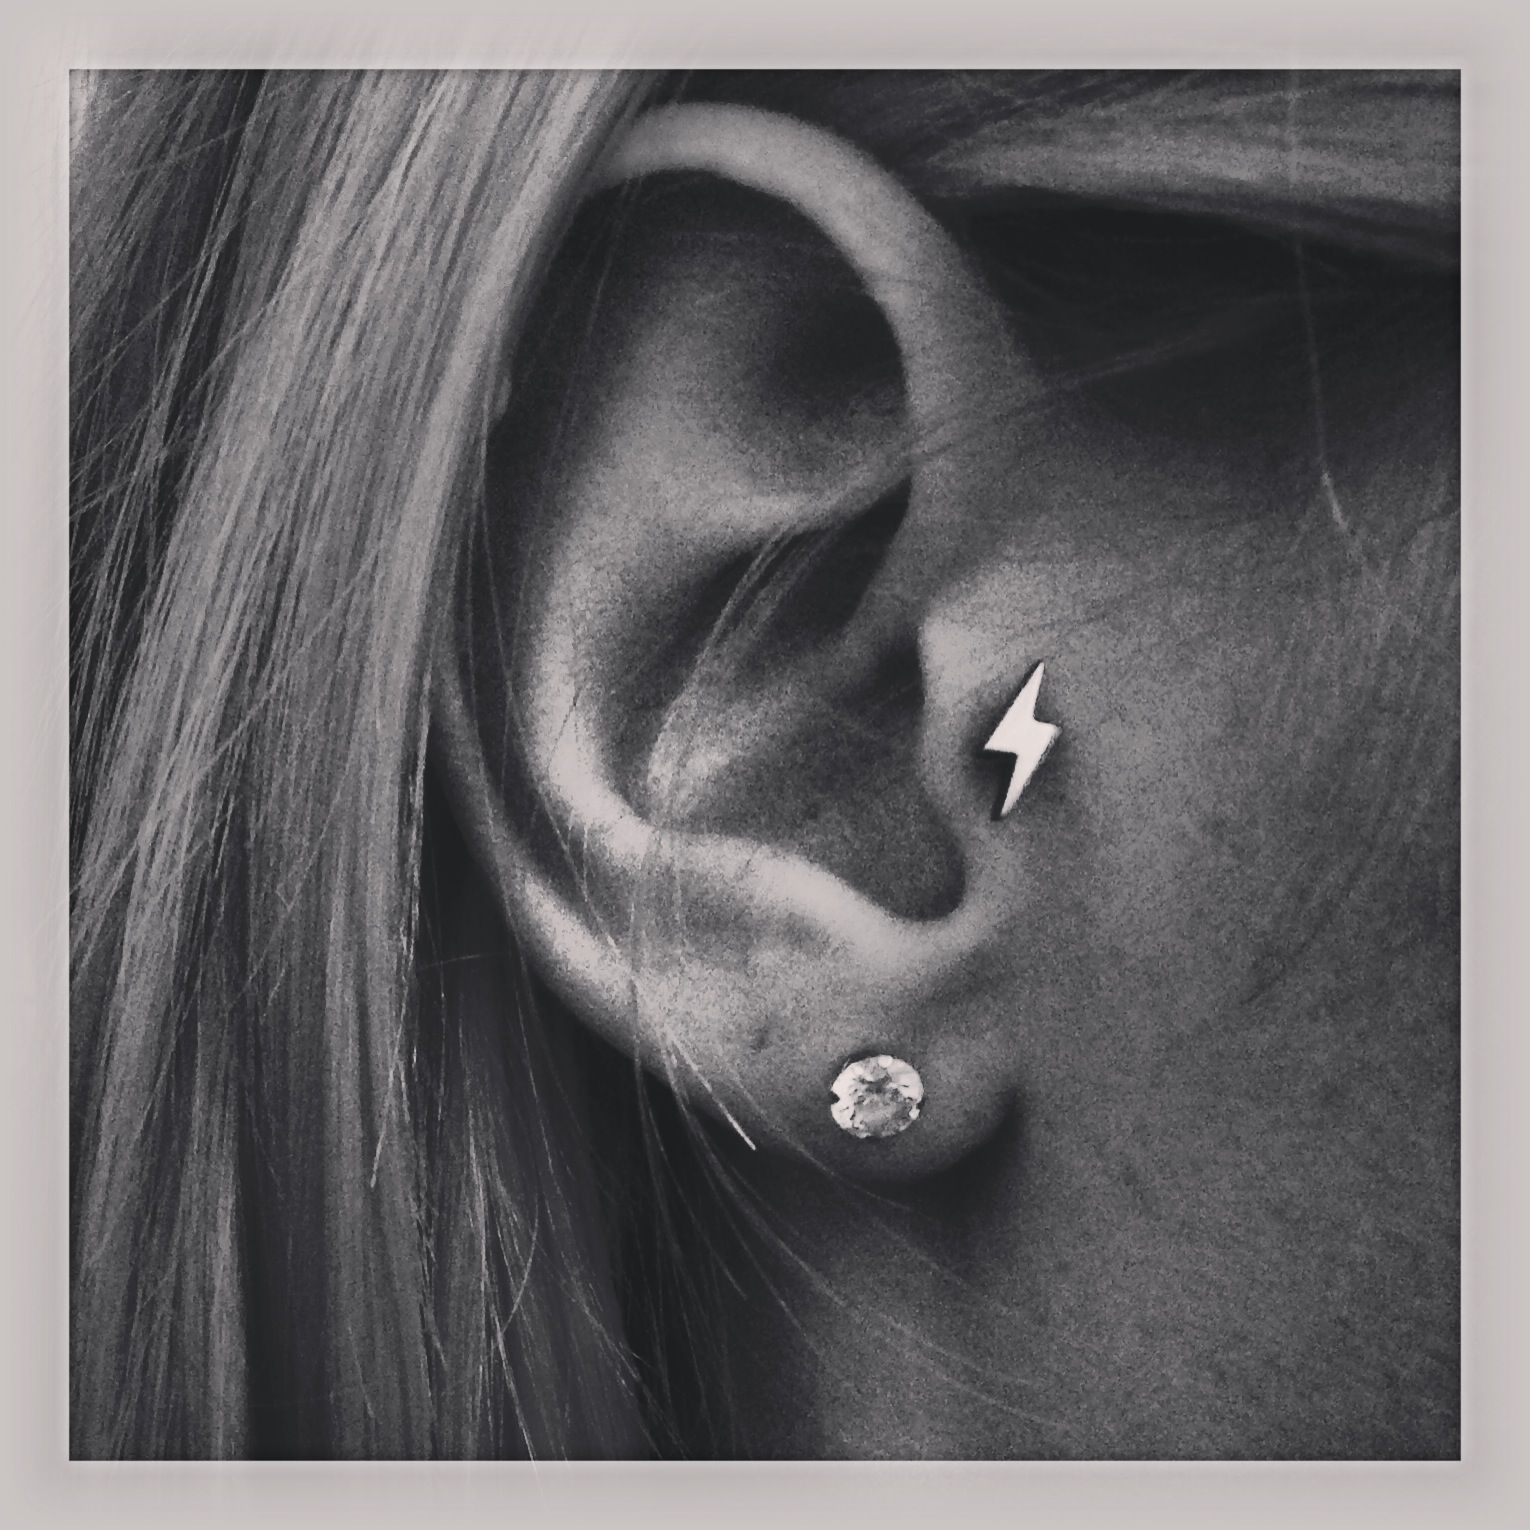 I'm Getting My Tragus Pierced For My Birthday In November And I Want This